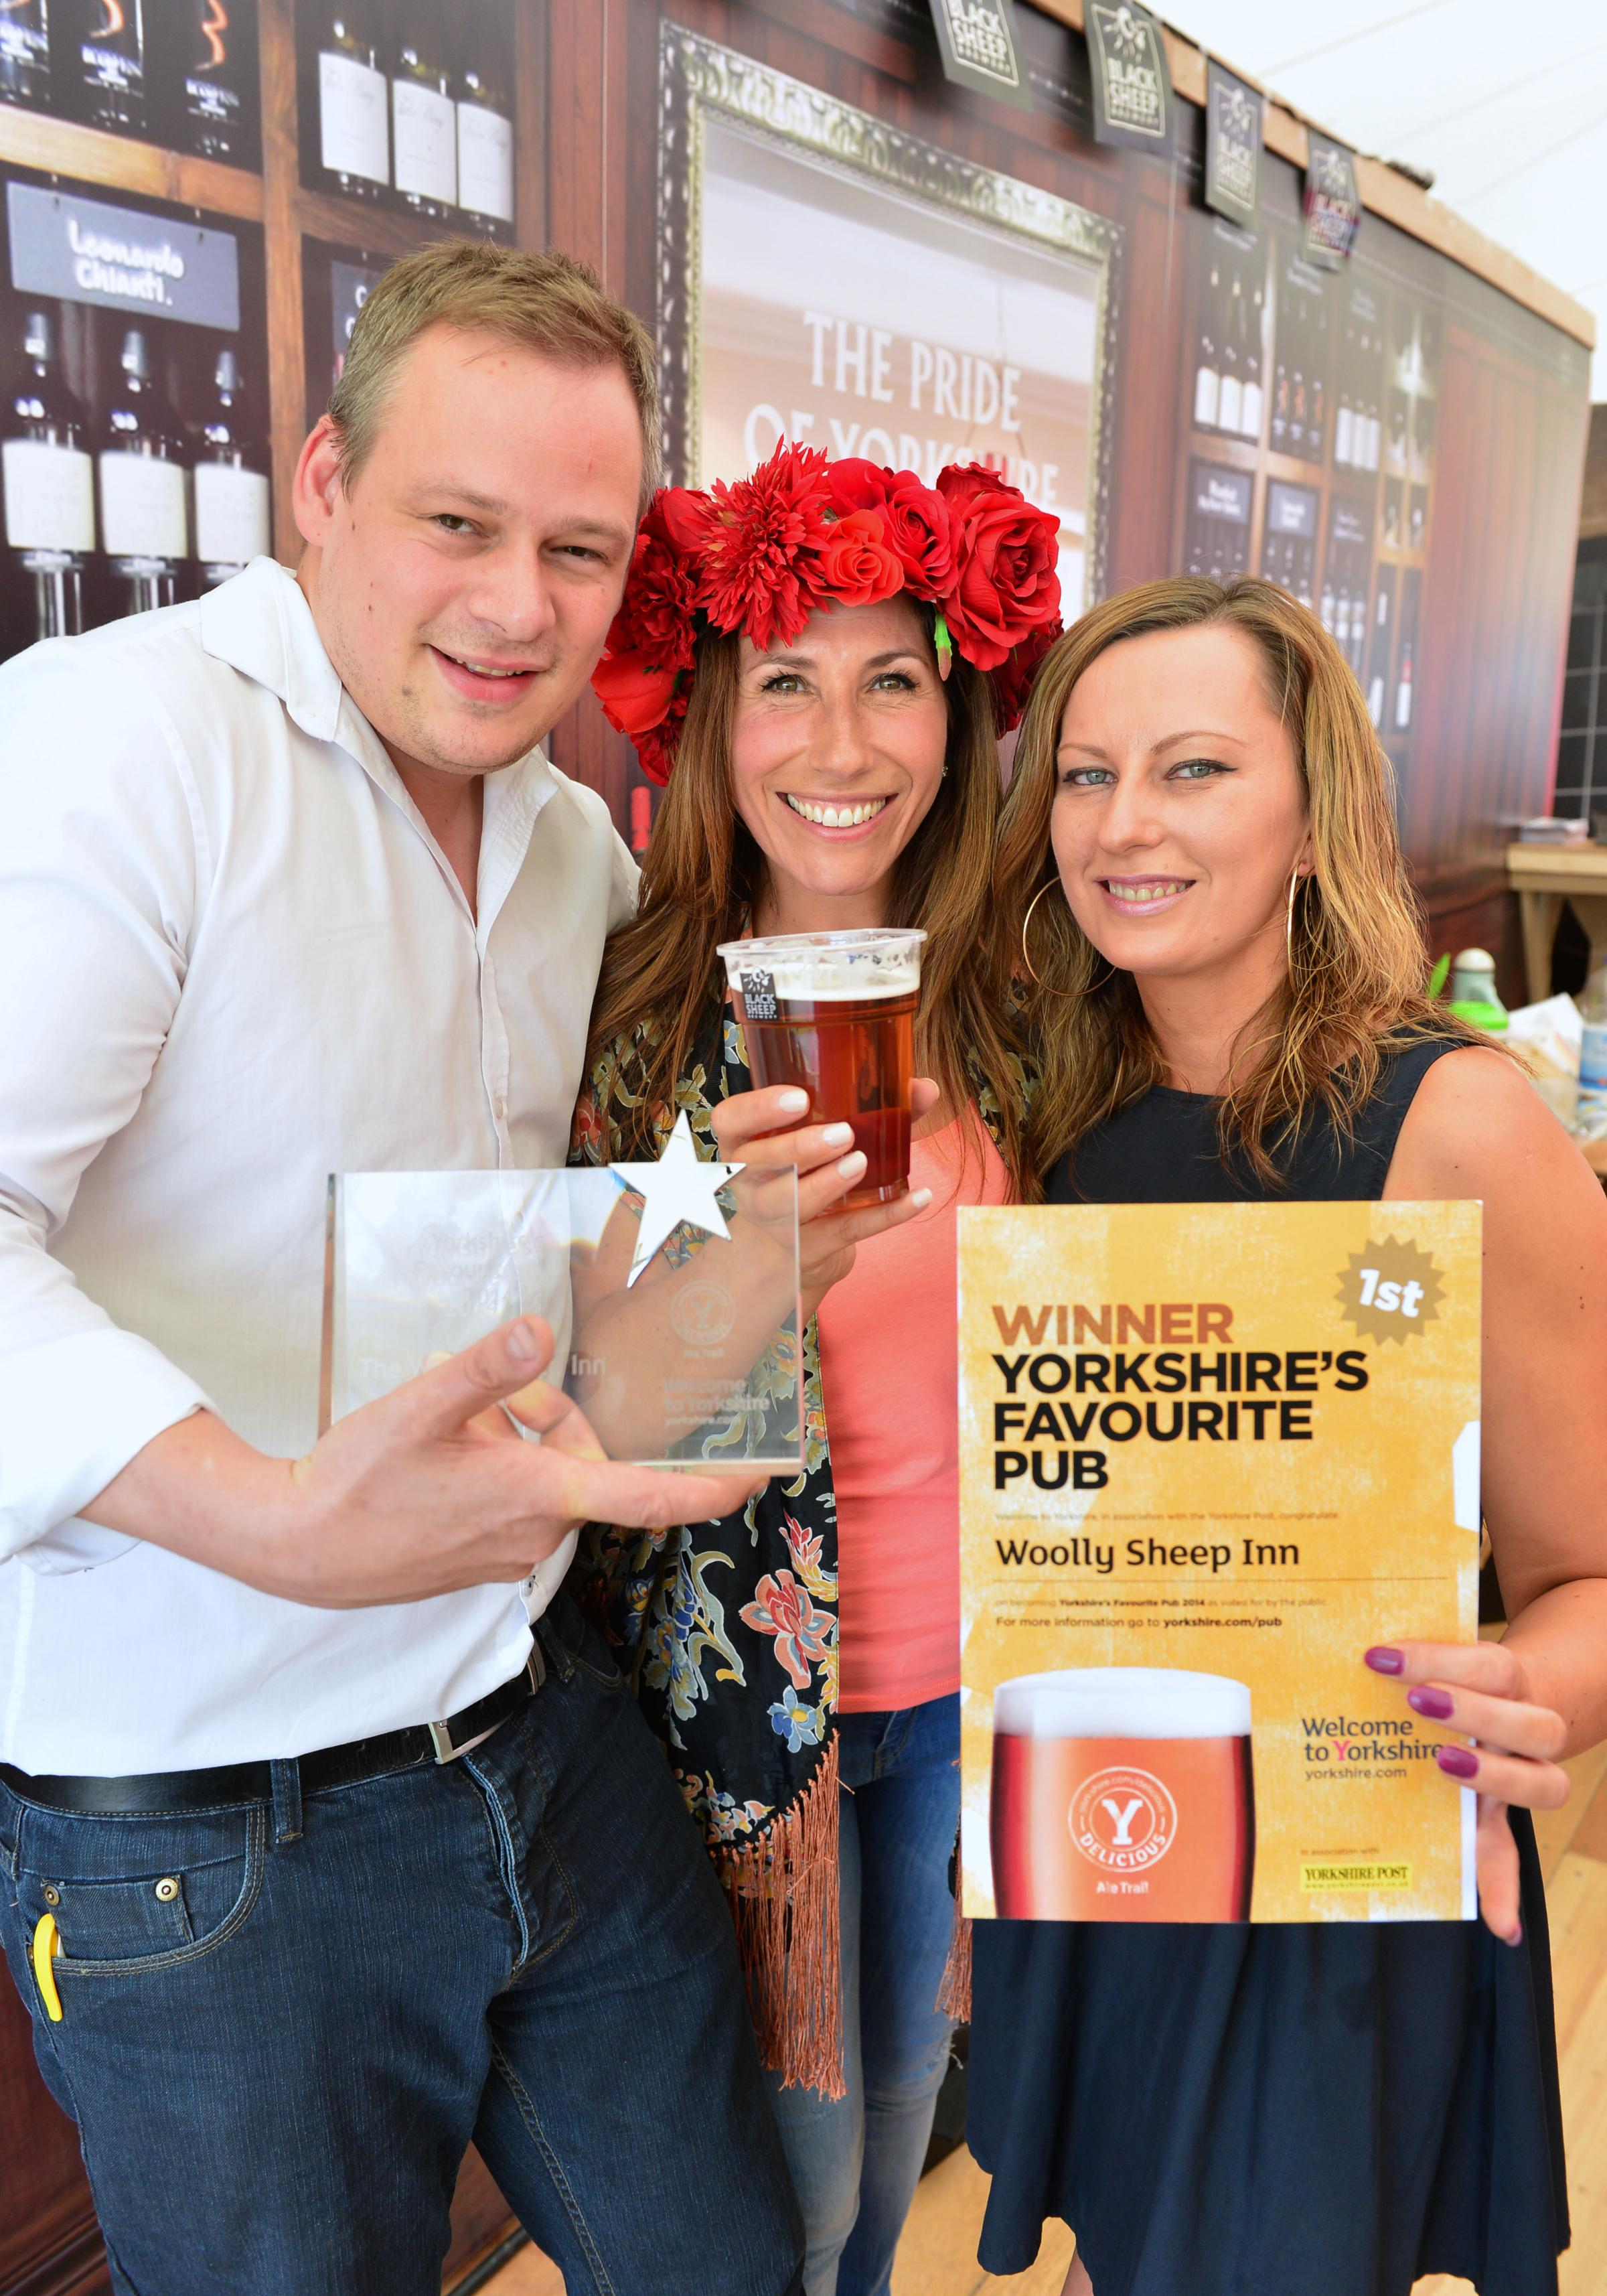 Woolly Sheep is Yorkshire's most popular pub